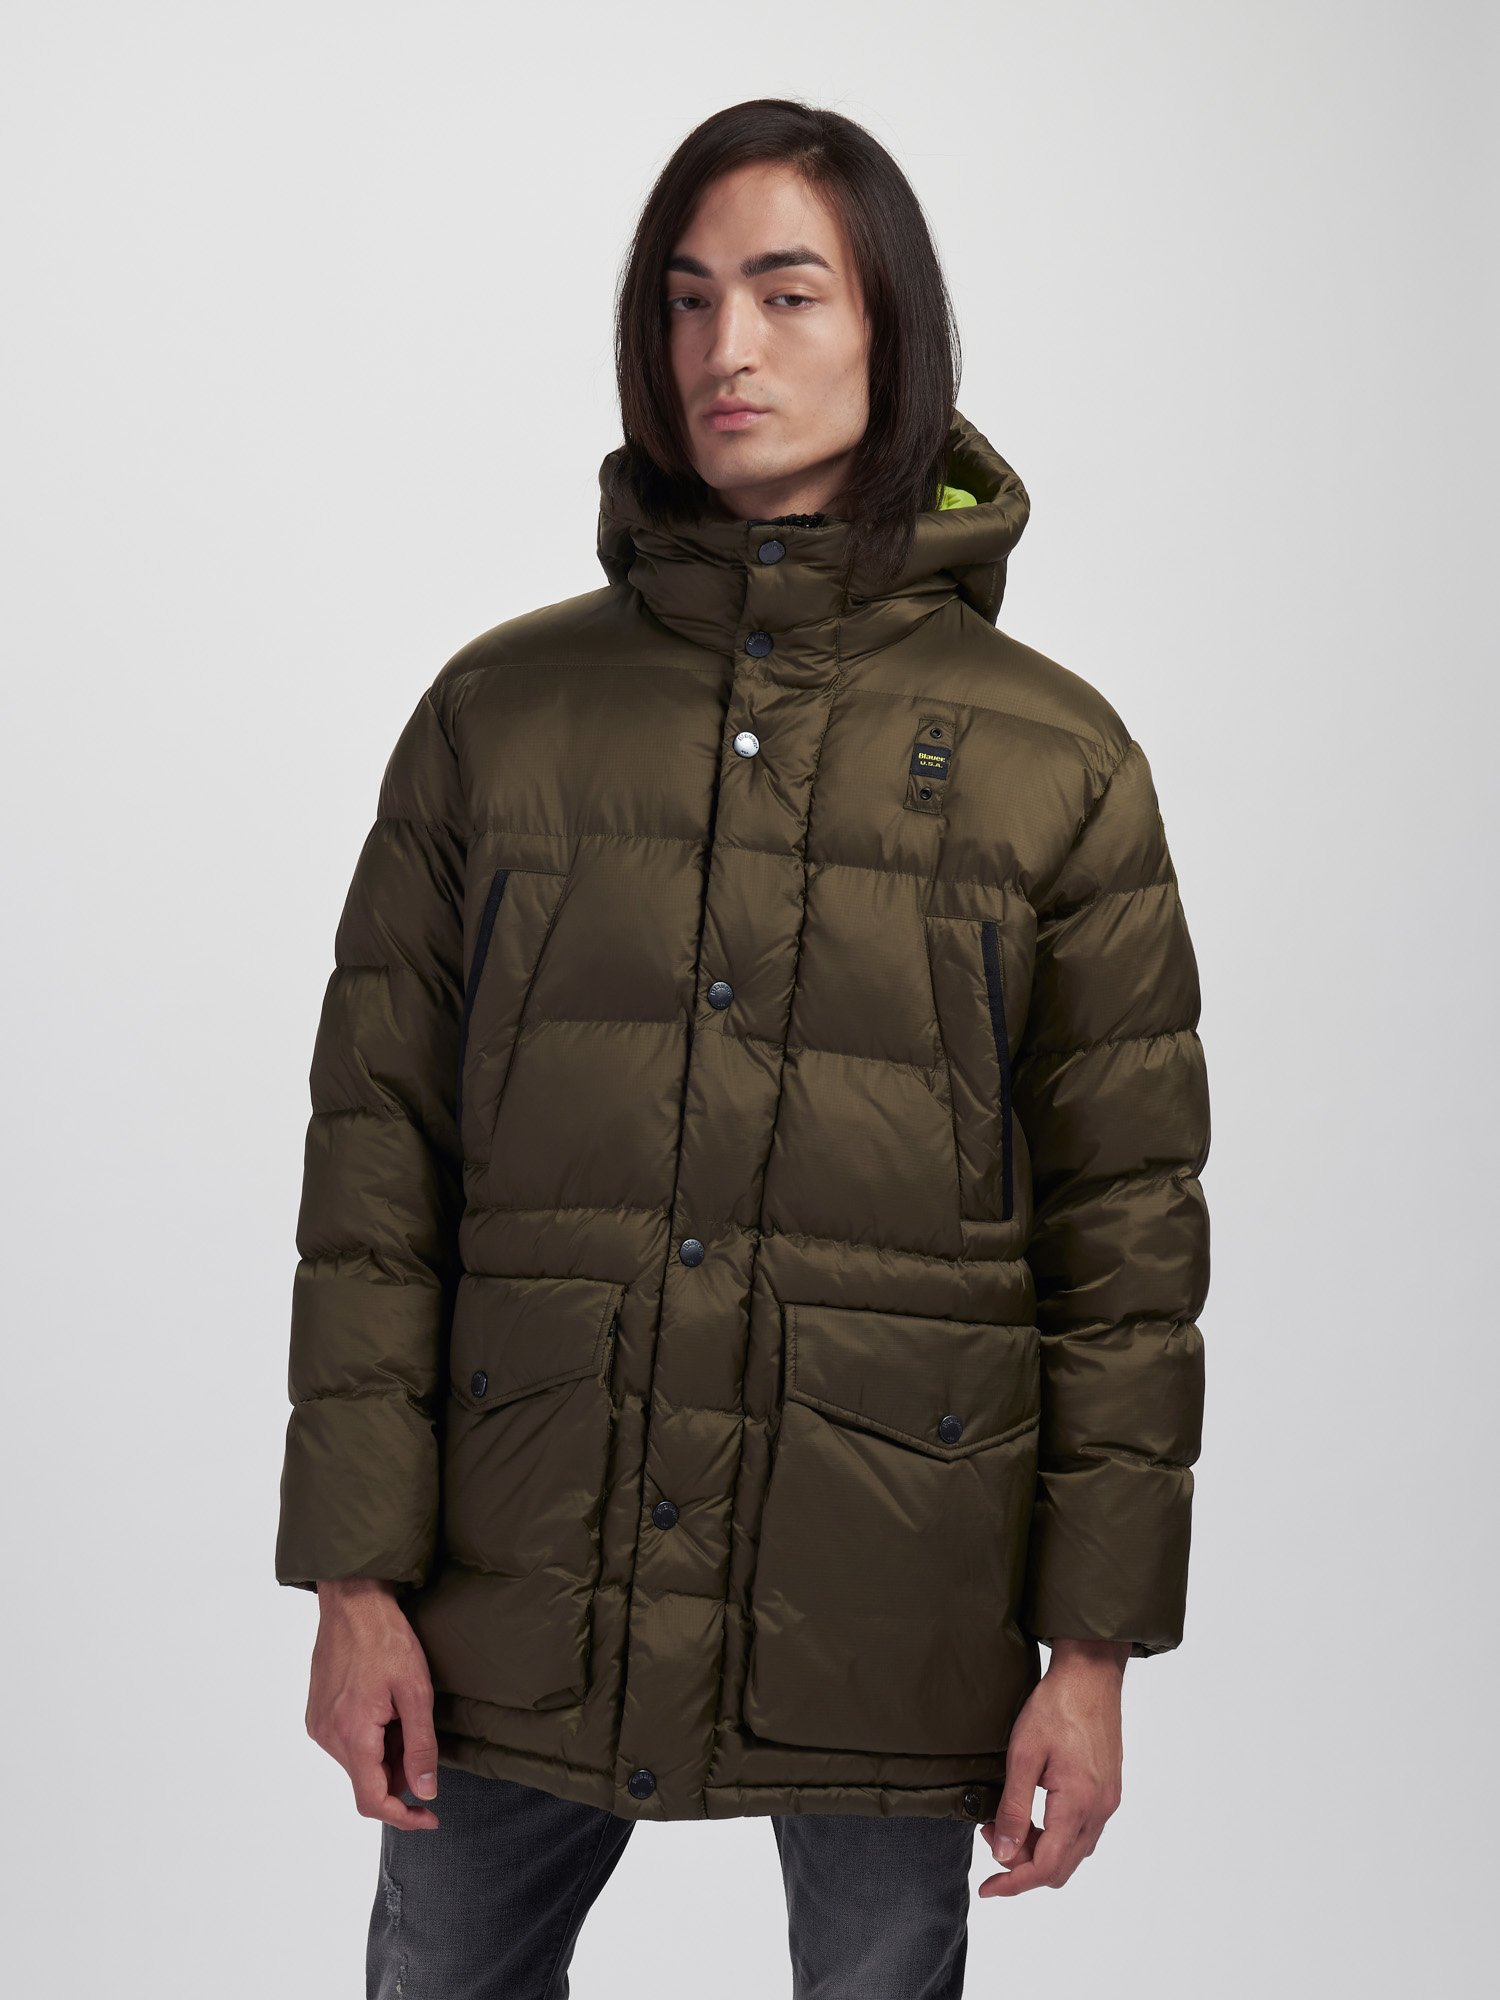 Blauer - ROGER LONG JACKET IN NYLON WITH HOOD - Light Military Green - Blauer